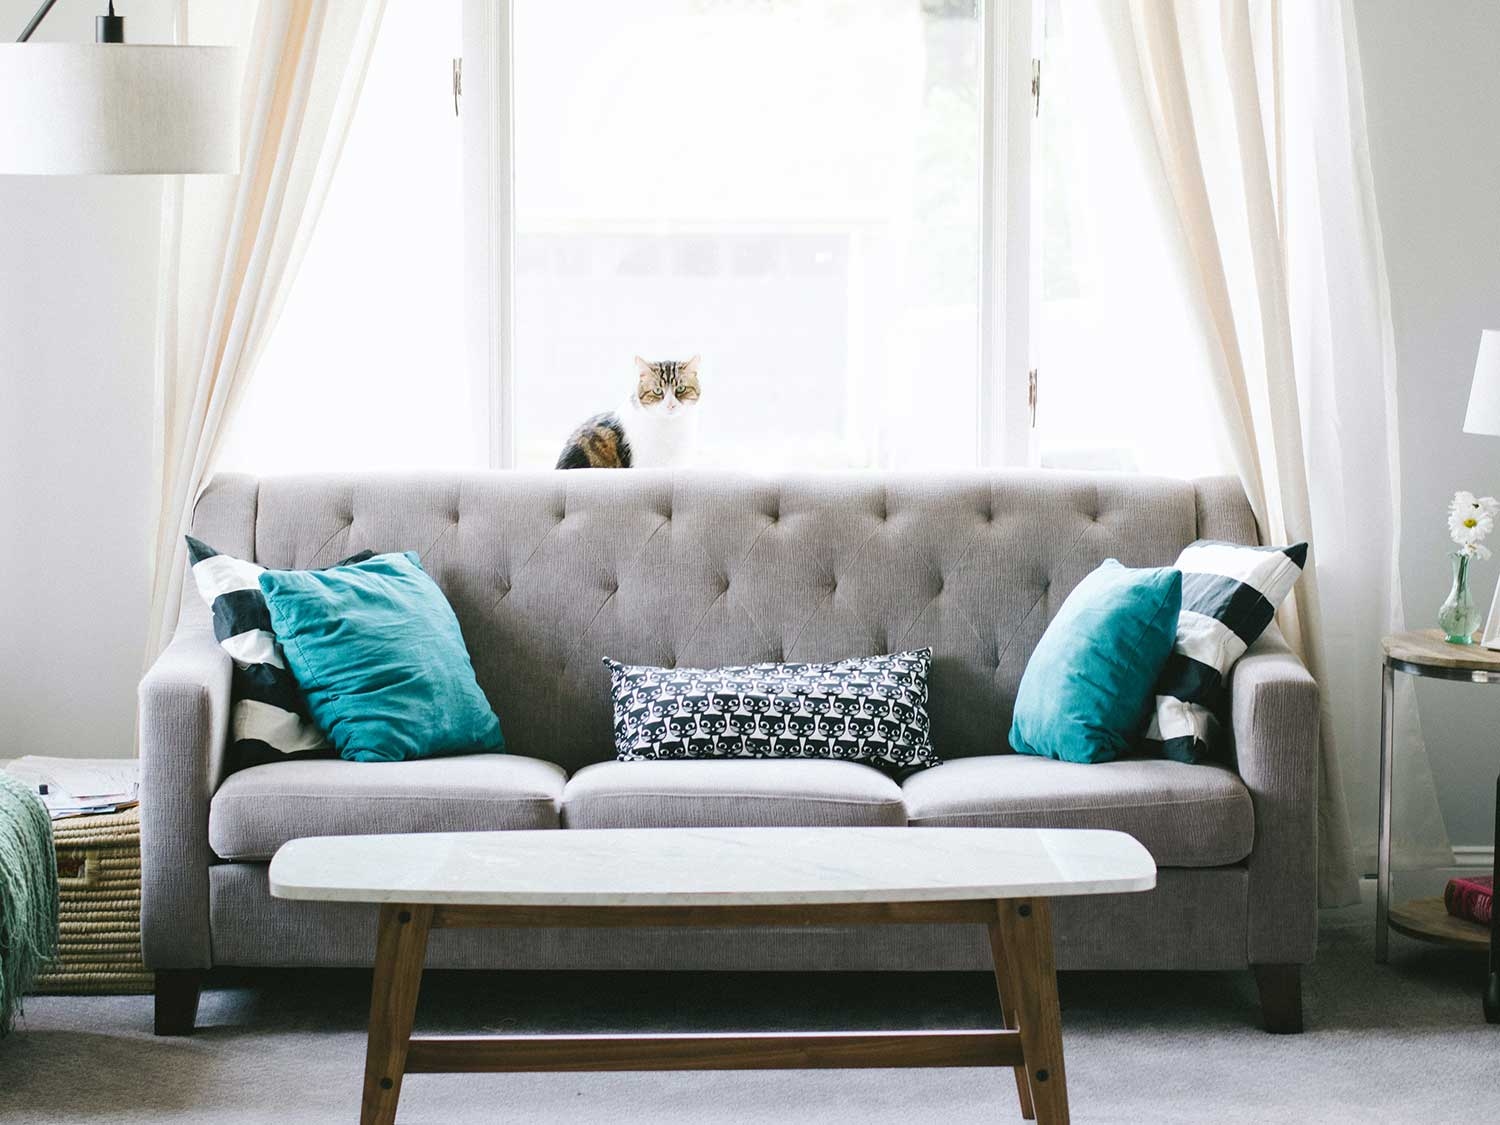 Sofa in front of window.